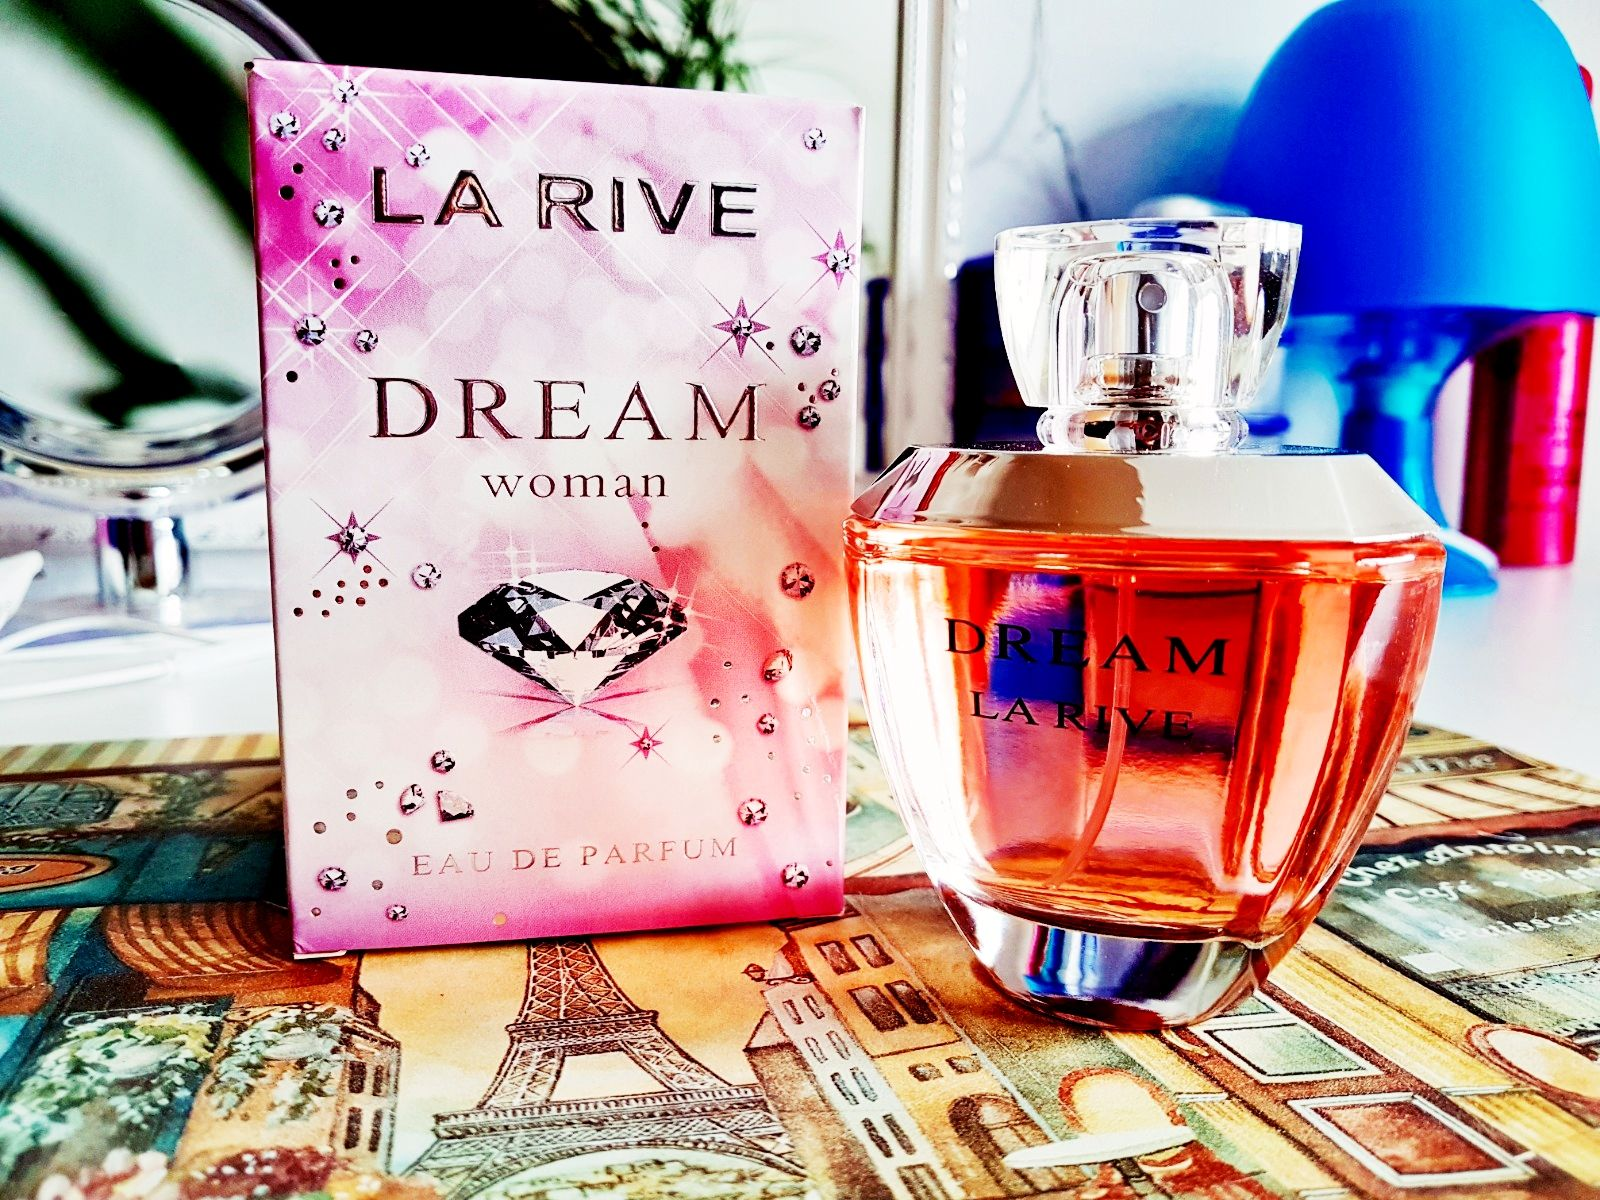 La Rive Dream Parfum